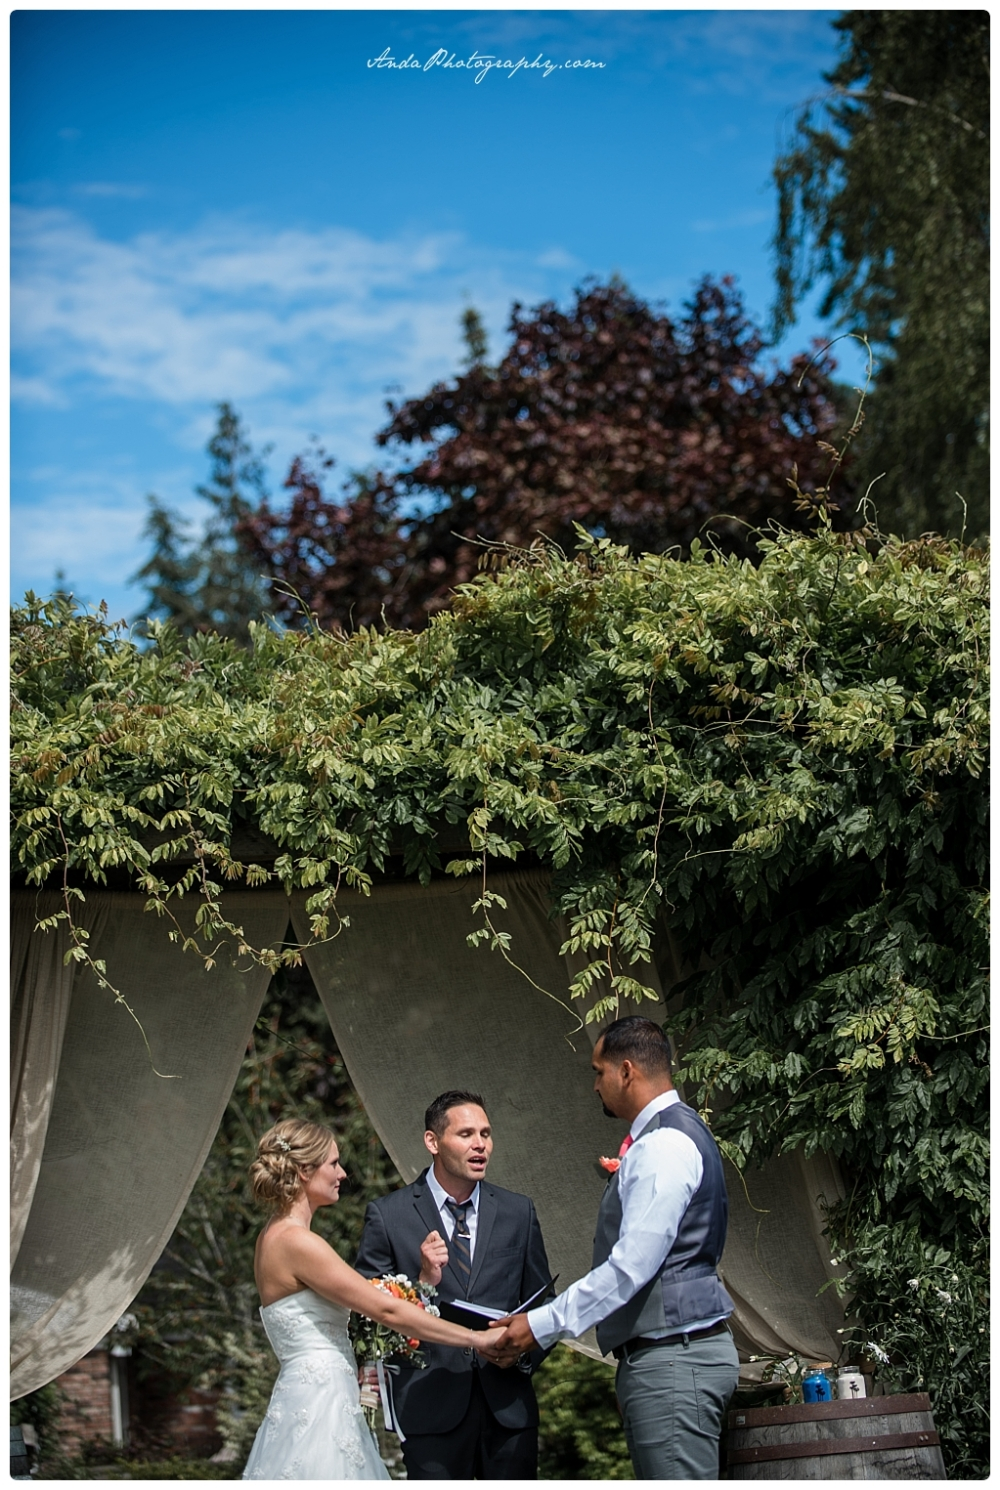 Anda Photography Bellingham wedding photographer seattle wedding photographer Hammer Ranch wedding_0092